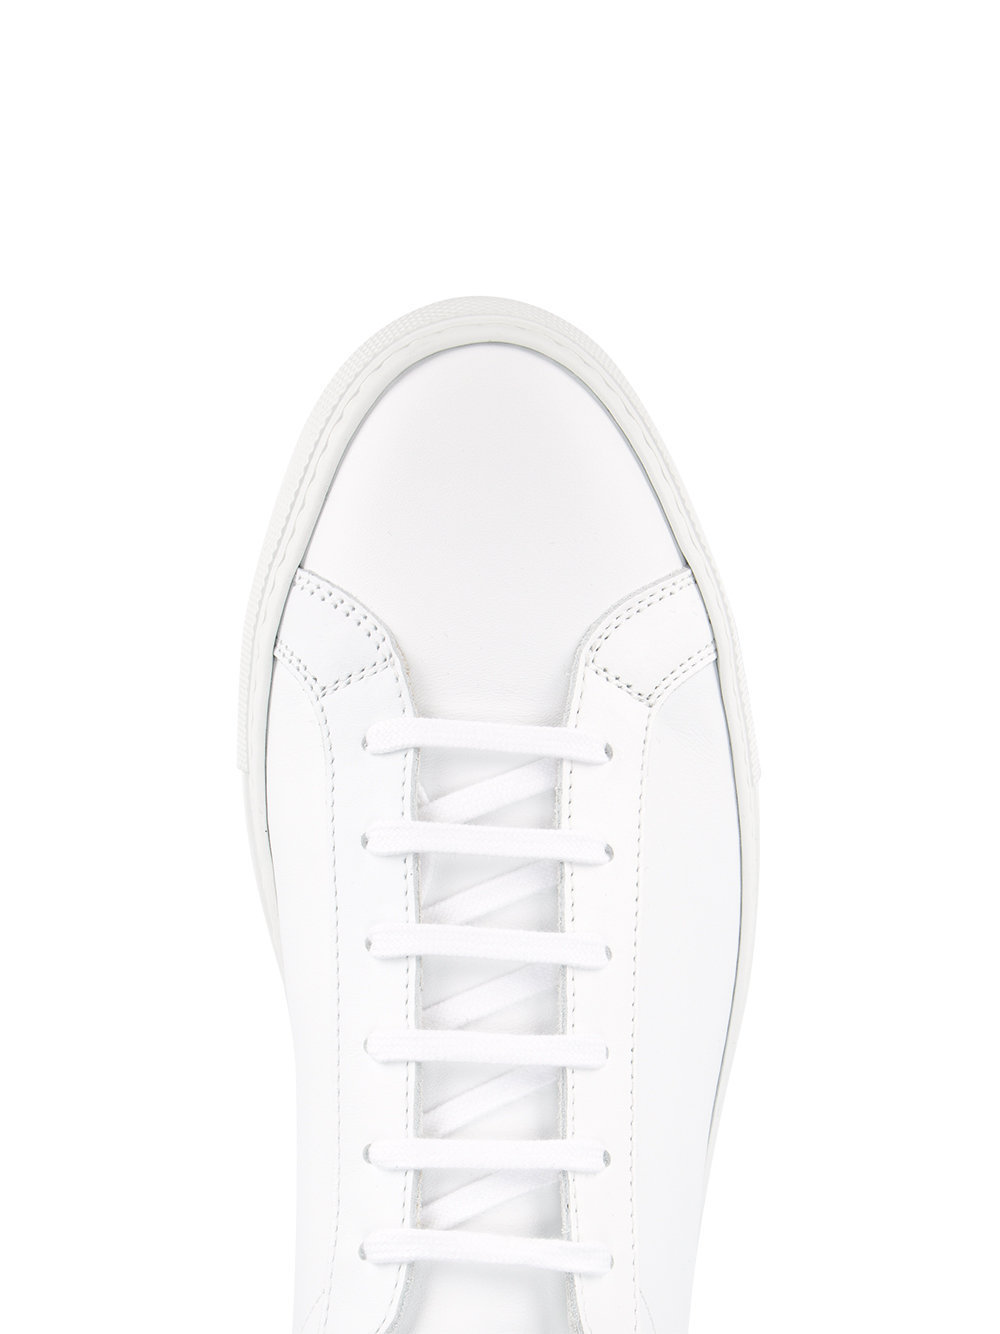 ∞∞Common Projects∞∞ Achilles スニーカー☆ホワイト